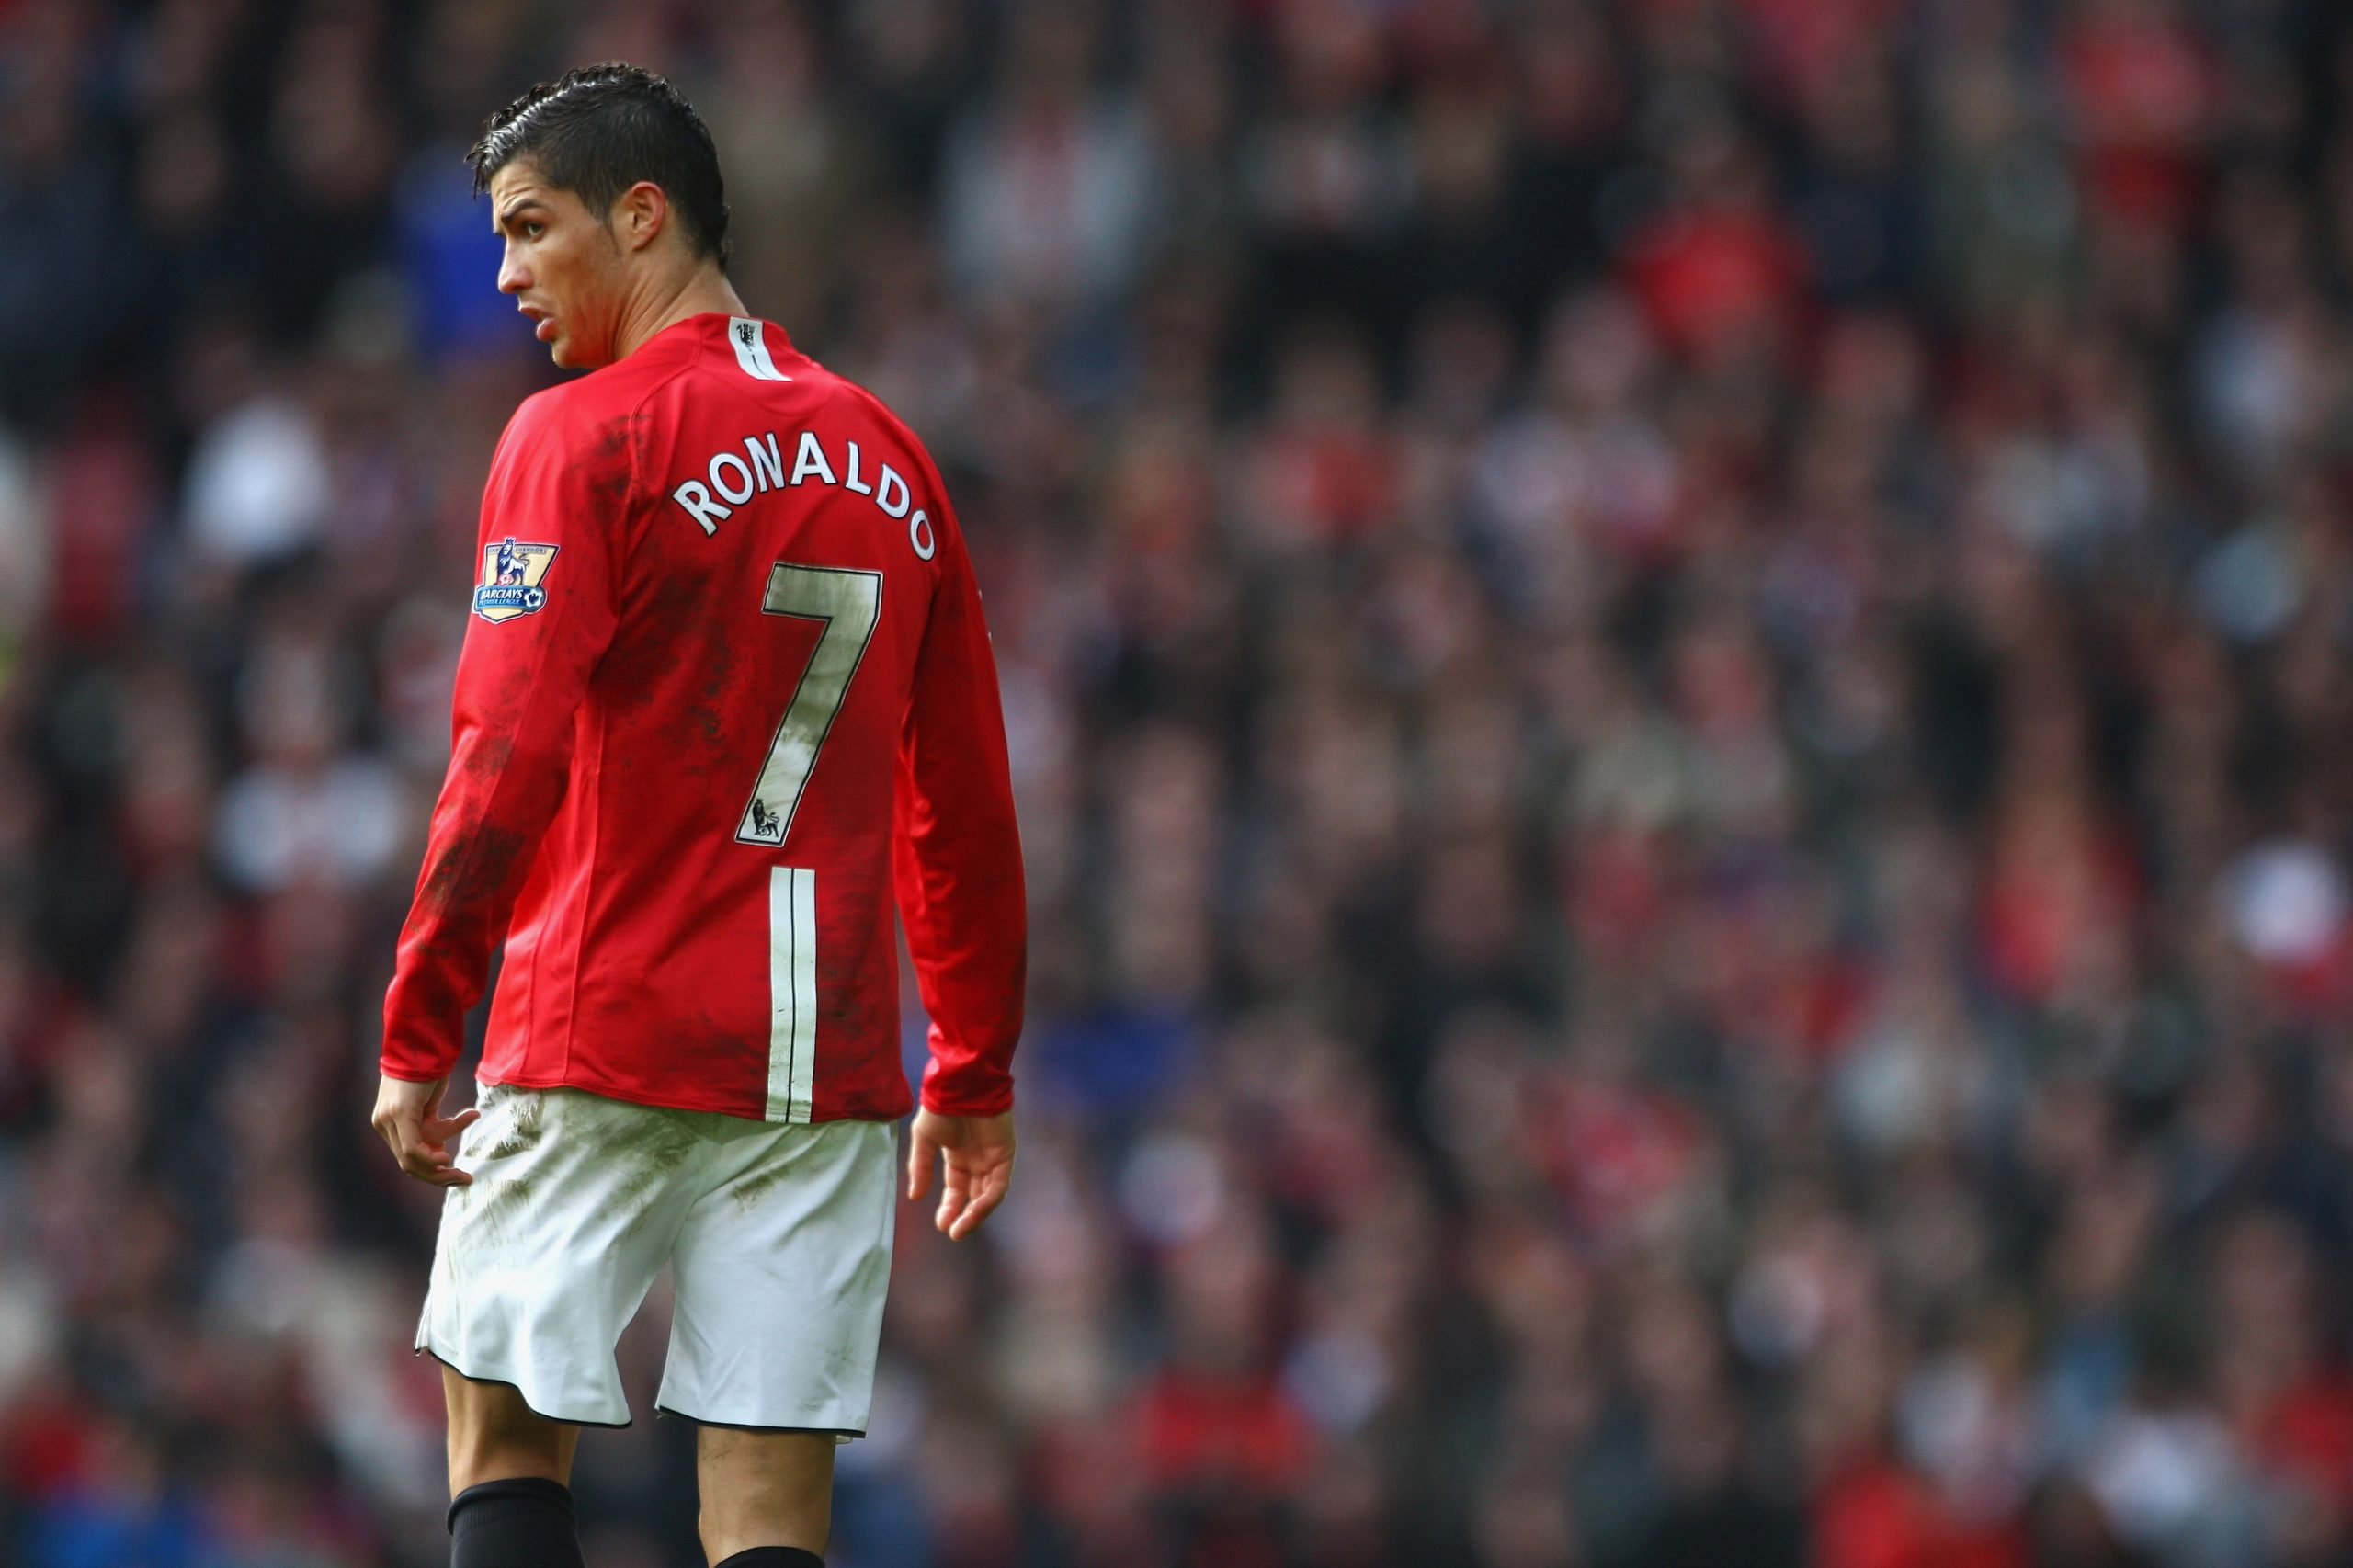 Laws deprive Ronaldo of his favourite Manchester United shirt